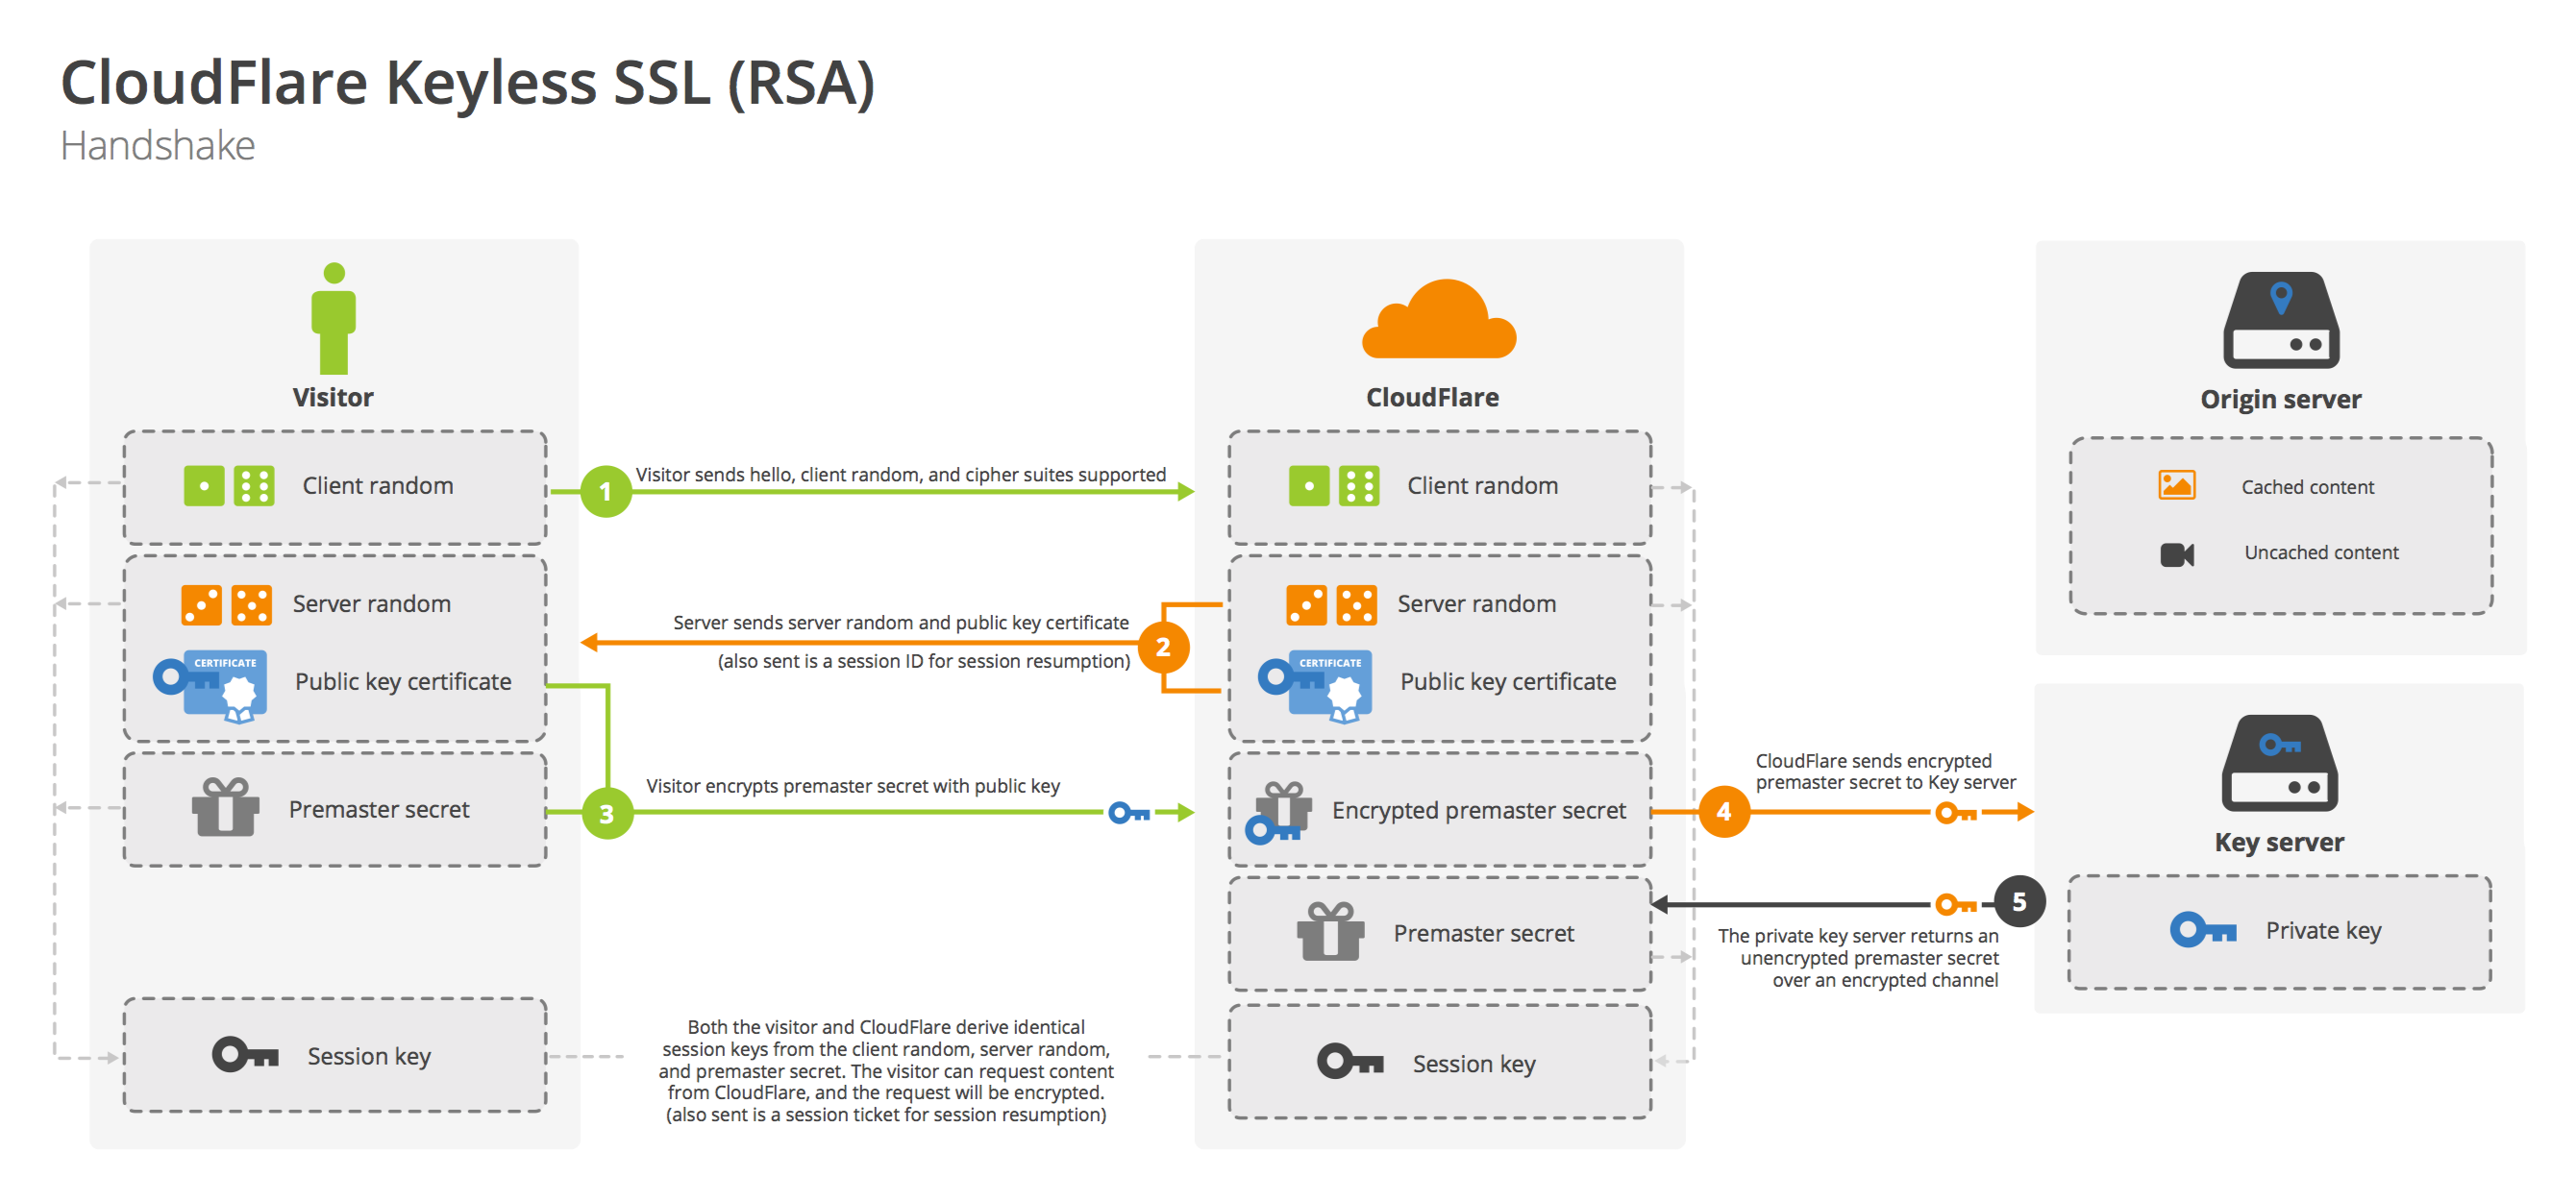 A diagram of how Cloudflare's Keyless SSL handles the handshake for an RSA-based Transport Security Layer (TLS) session.